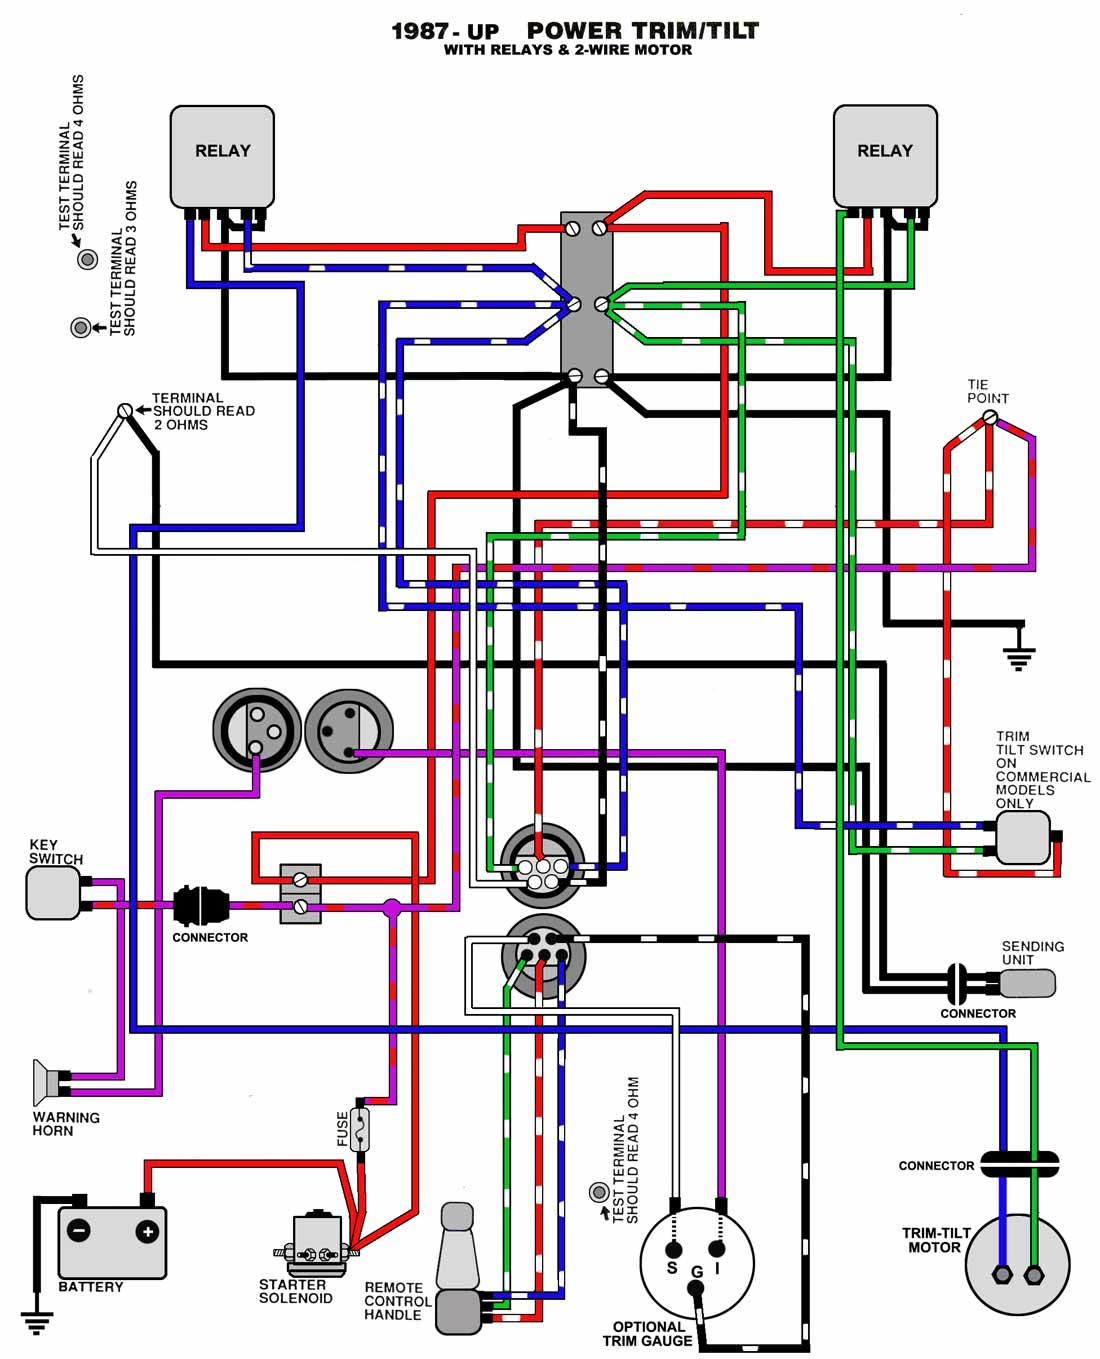 TnT_87_UP mastertech marine evinrude johnson outboard wiring diagrams on johnson outboard wiring diagram